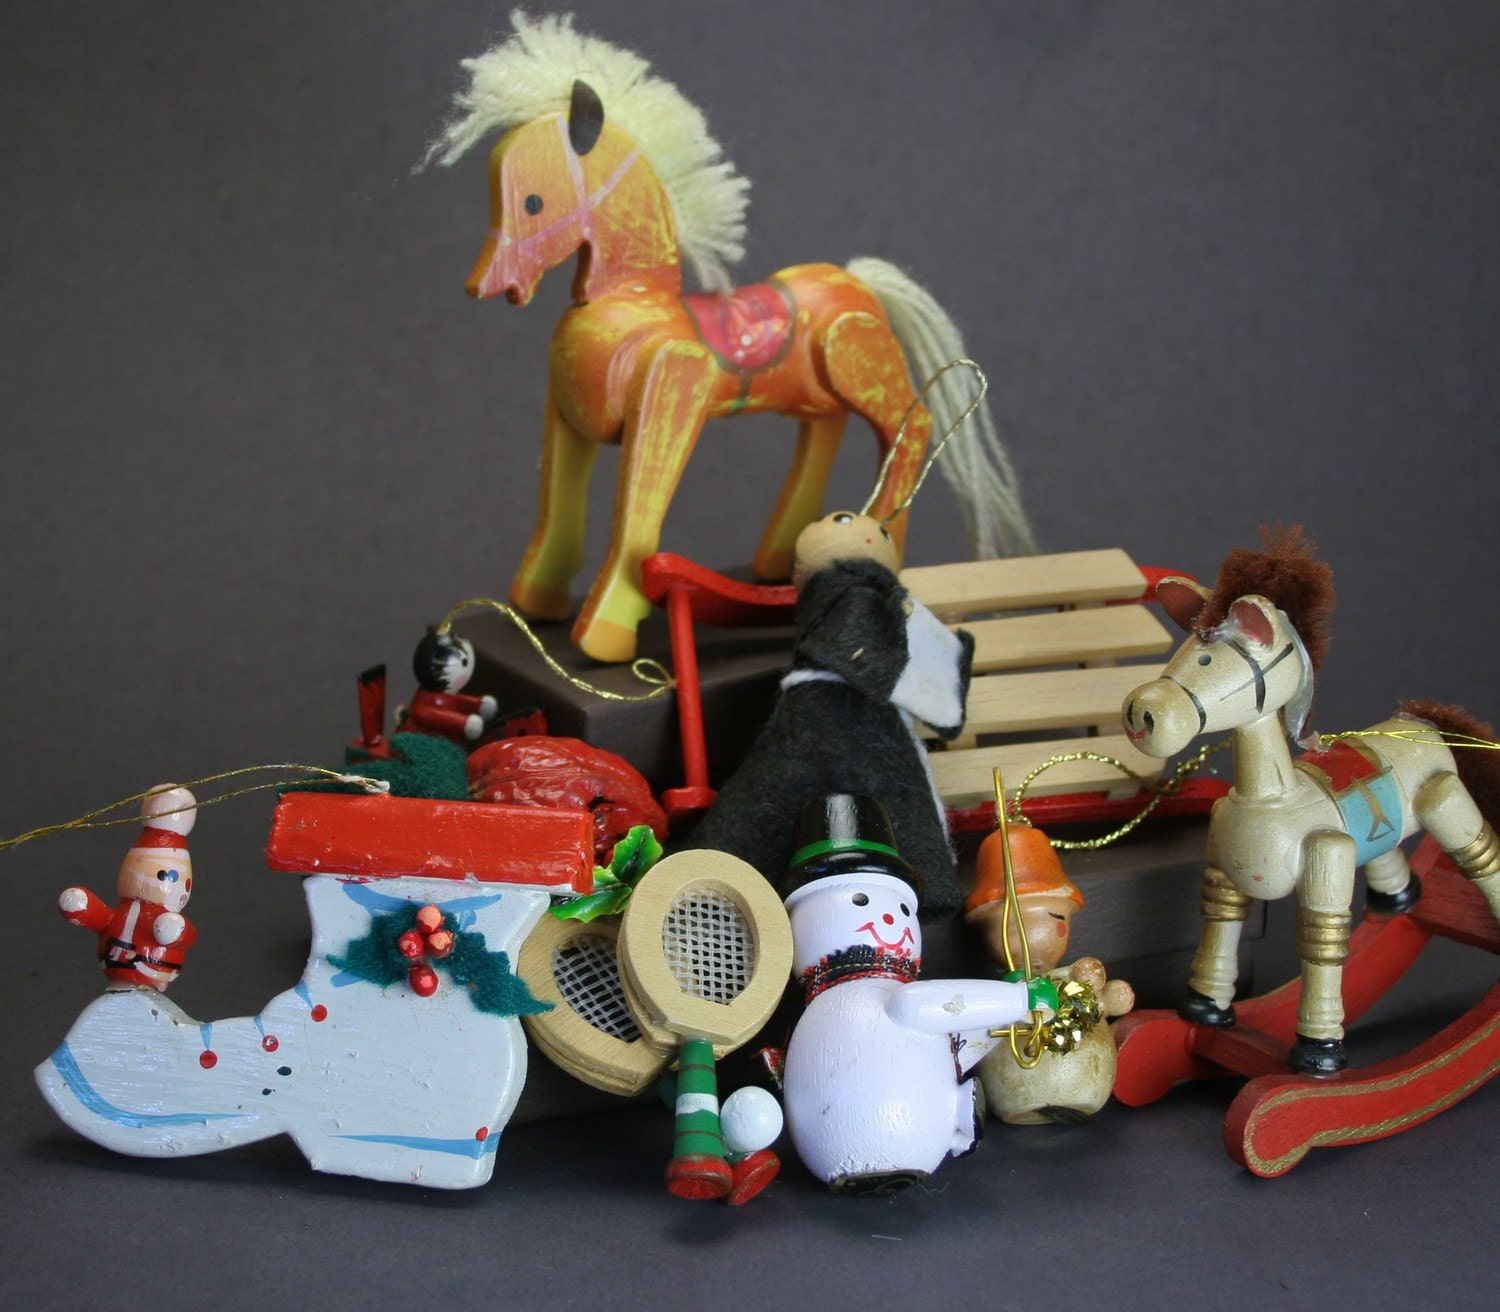 Retro Christmas Toy : Vintage wooden toy christmas ornaments